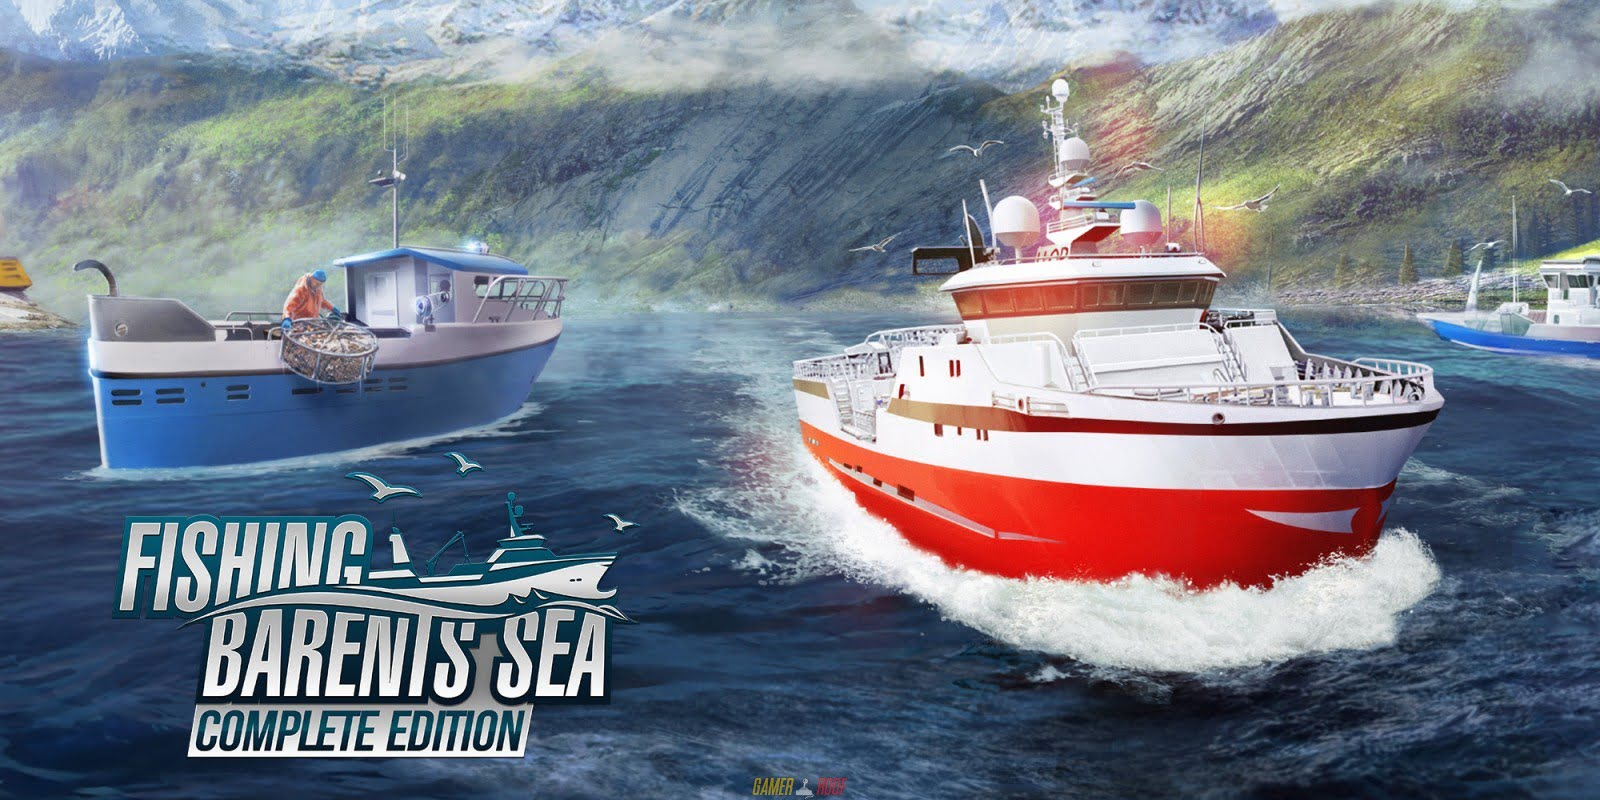 Fishing Barents Sea Complete Edition Nintendo Switch Version Full Game Free Download